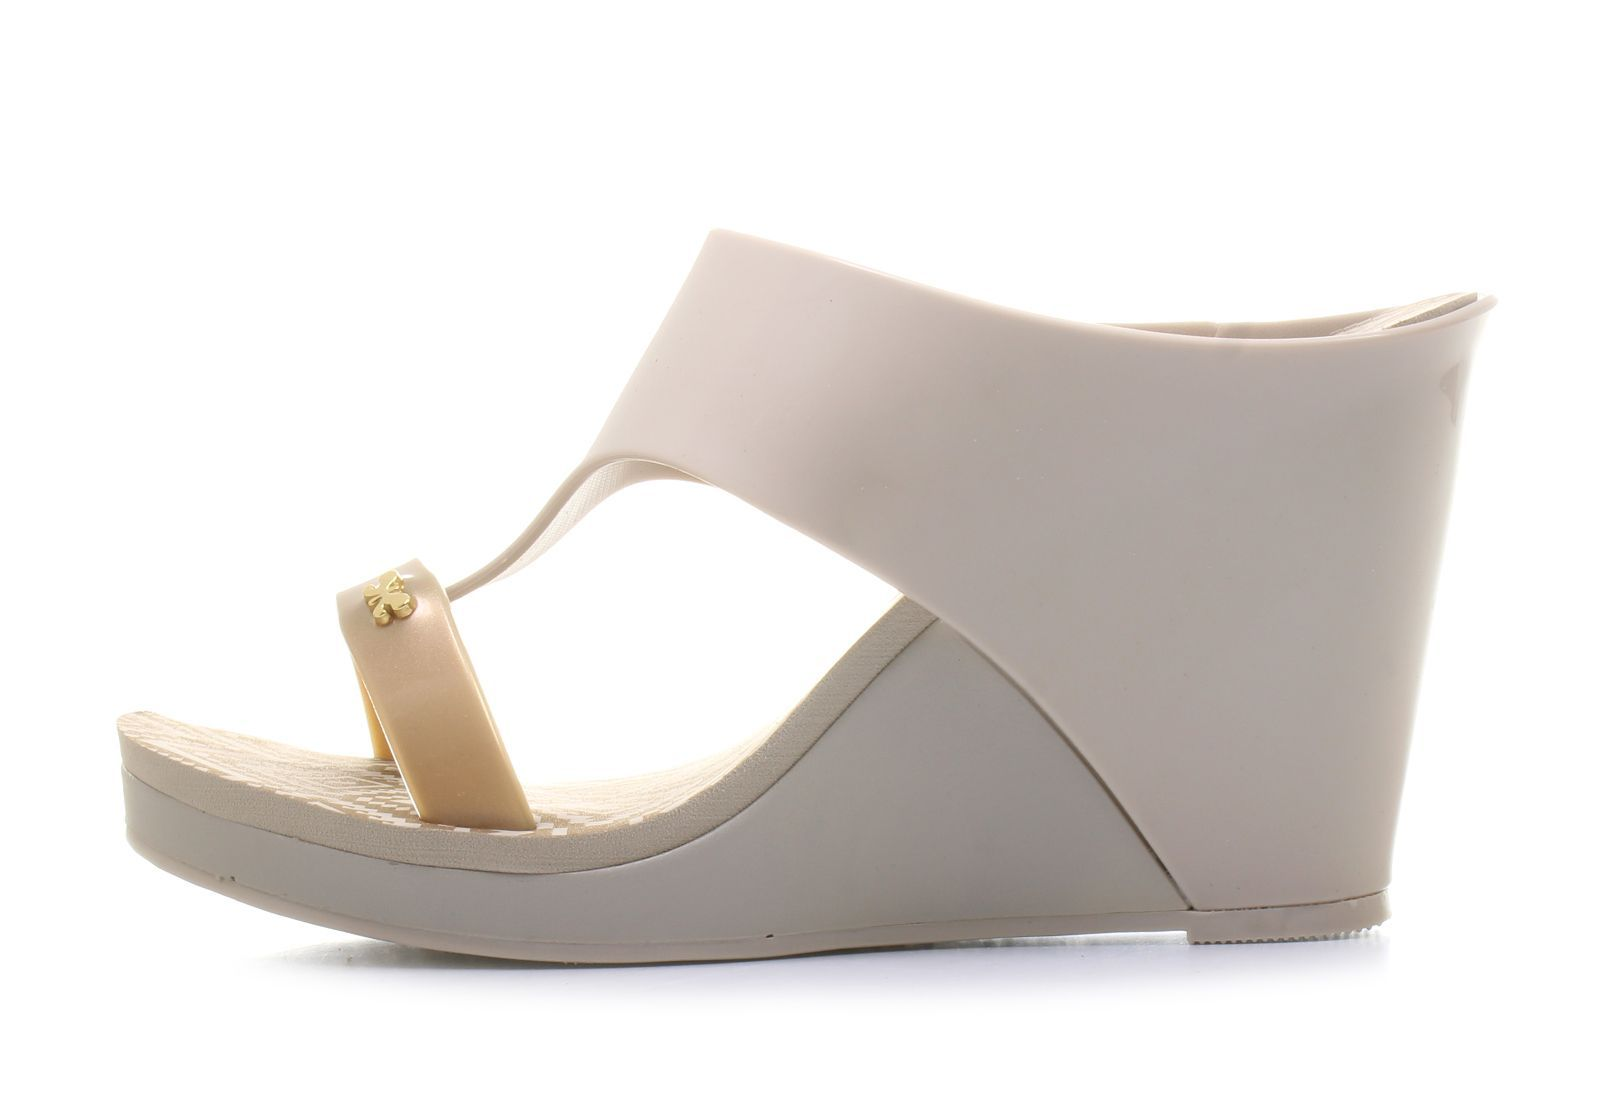 7a8e14468b Zaxy Sandals - Glamour Top - 81976-24306 - Online shop for sneakers ...